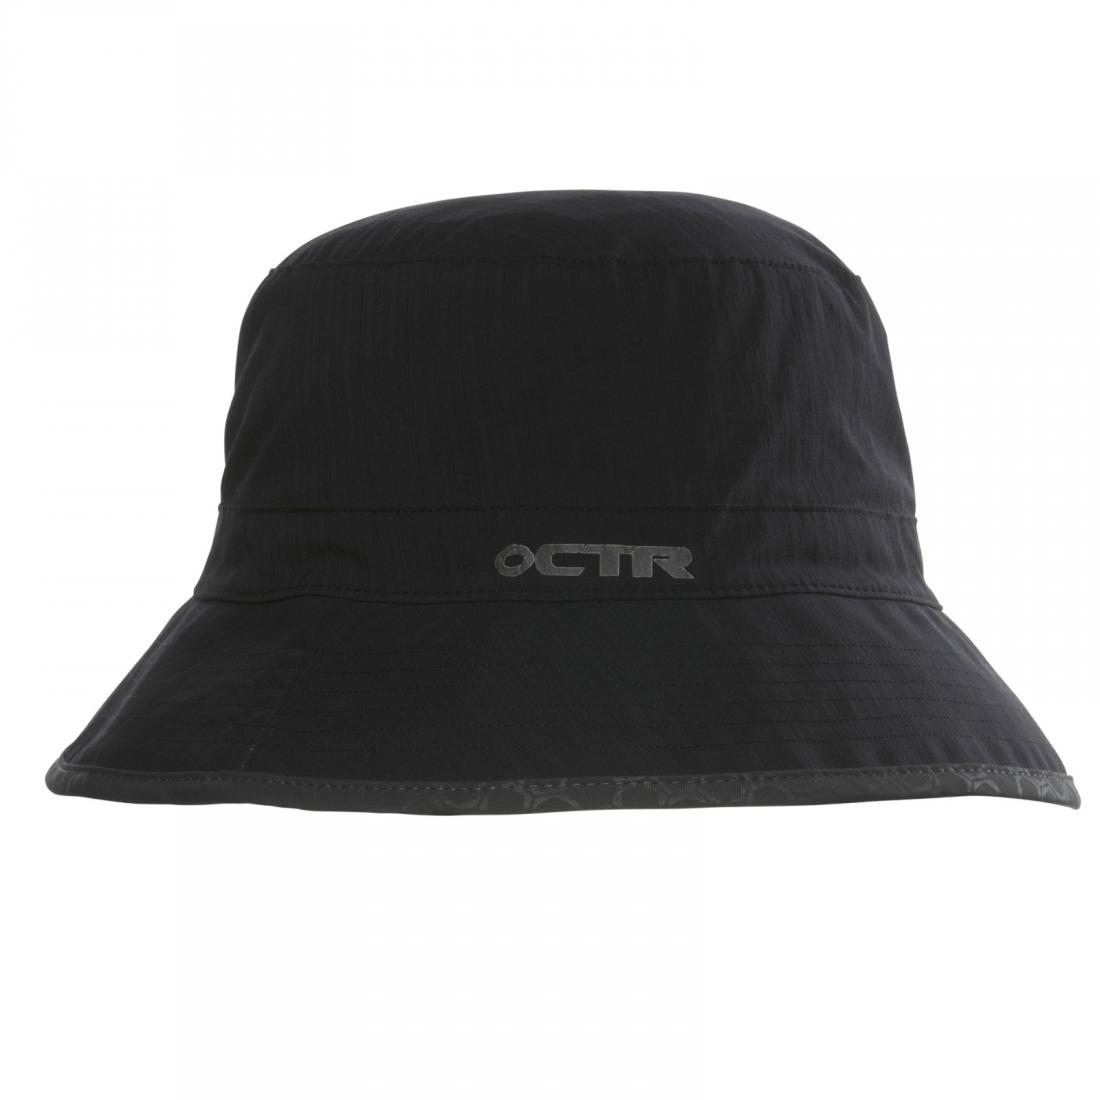 Chaos Панама Chaos Summit Bucket Hat шатура кровать chester 180х200